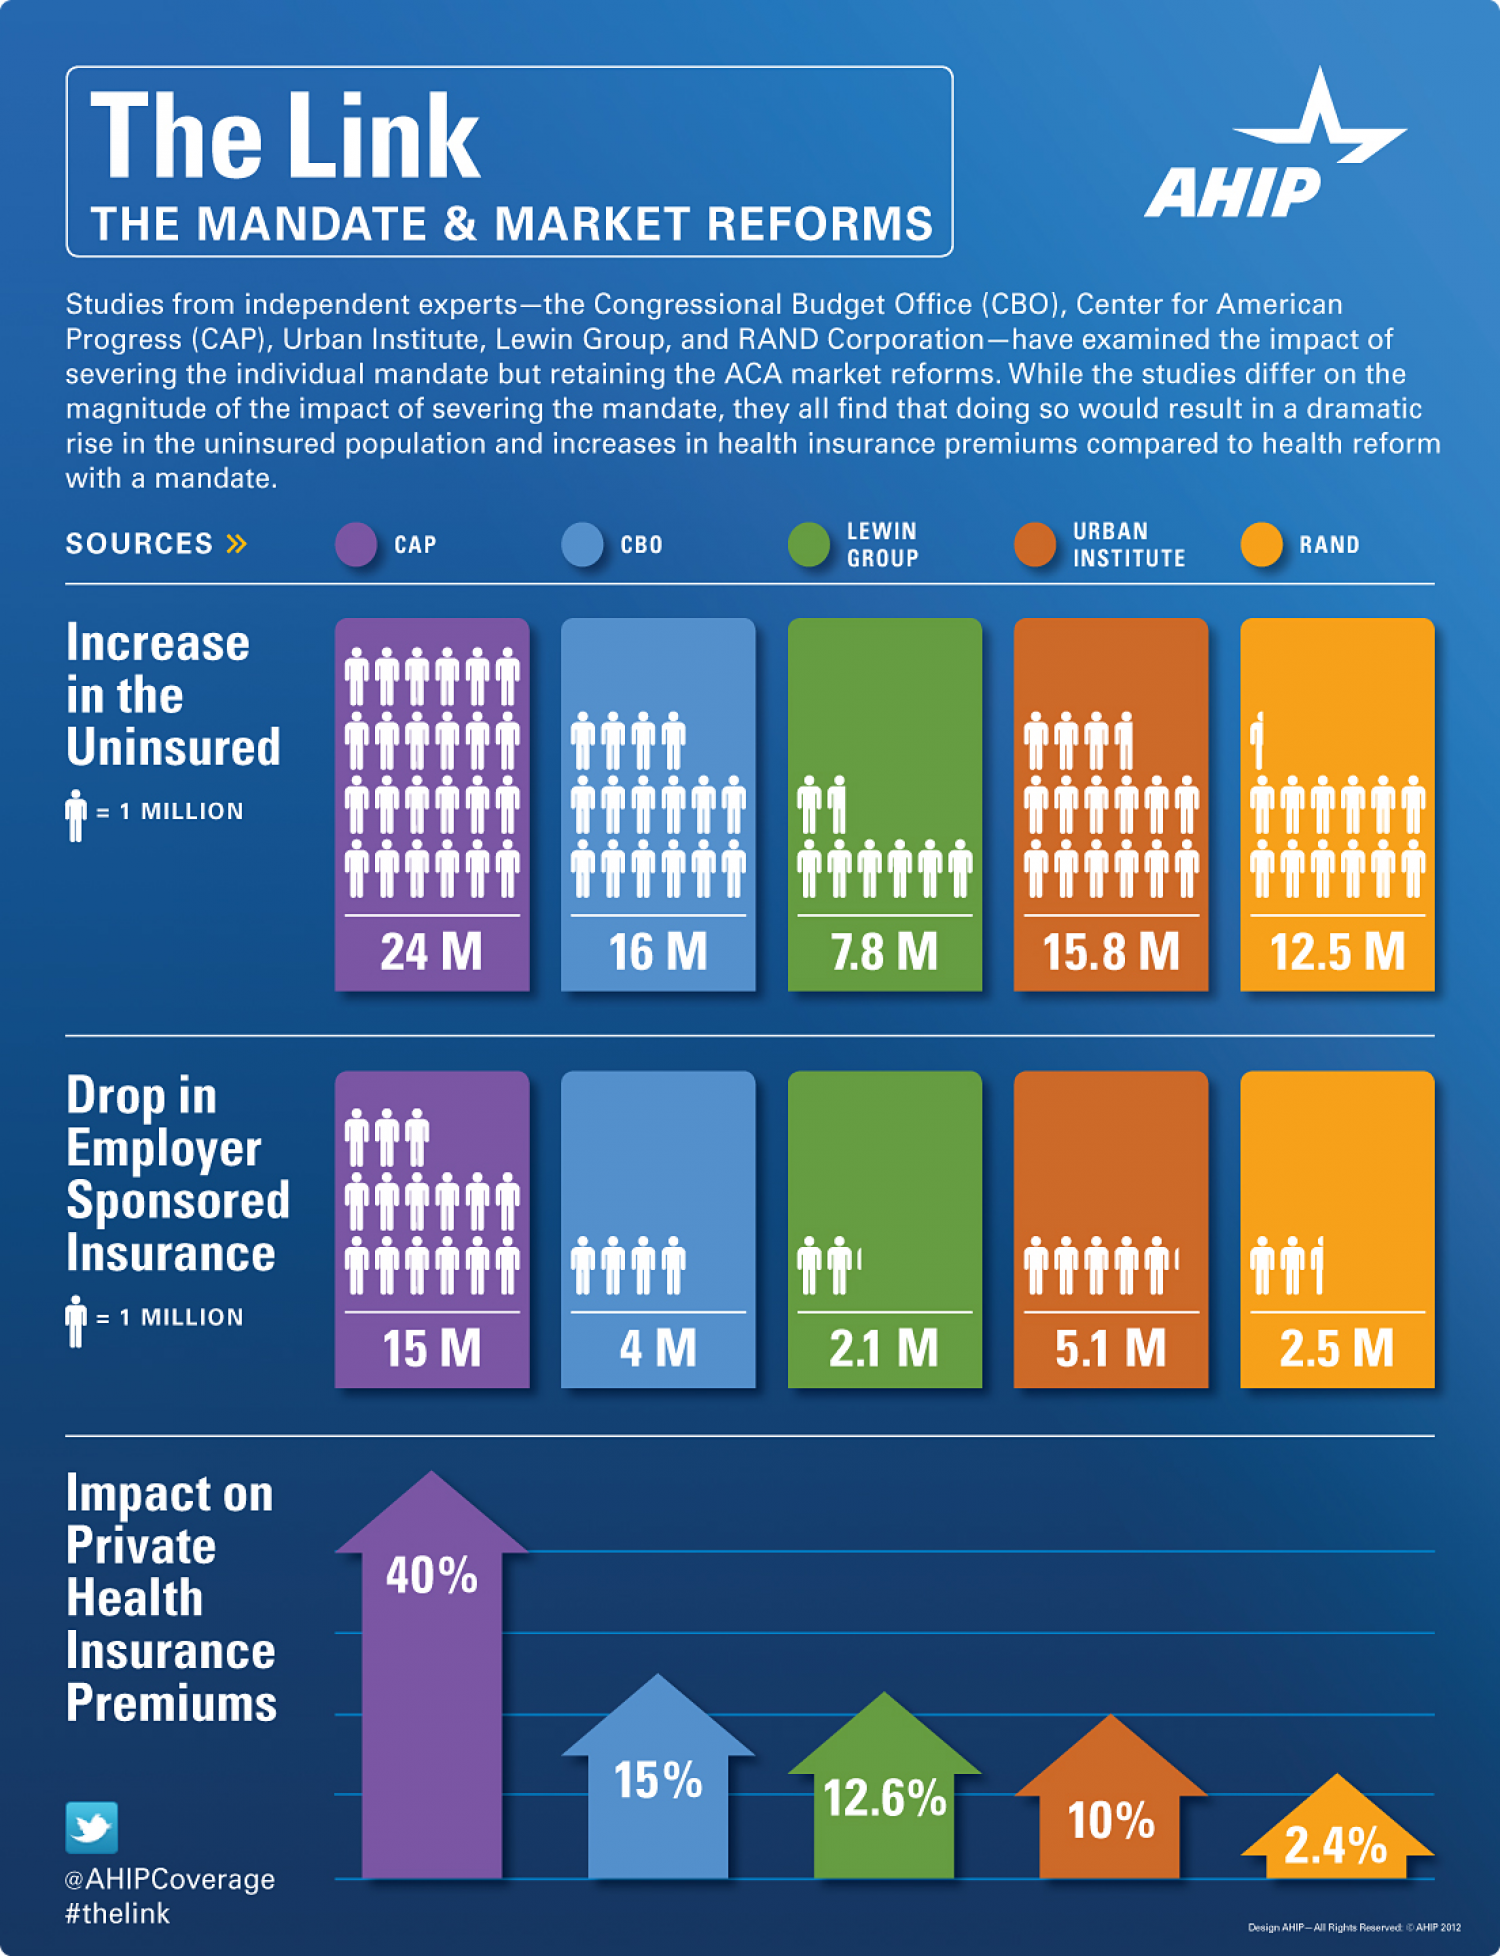 The Impact of ACA Market Reforms Without a Mandate Infographic